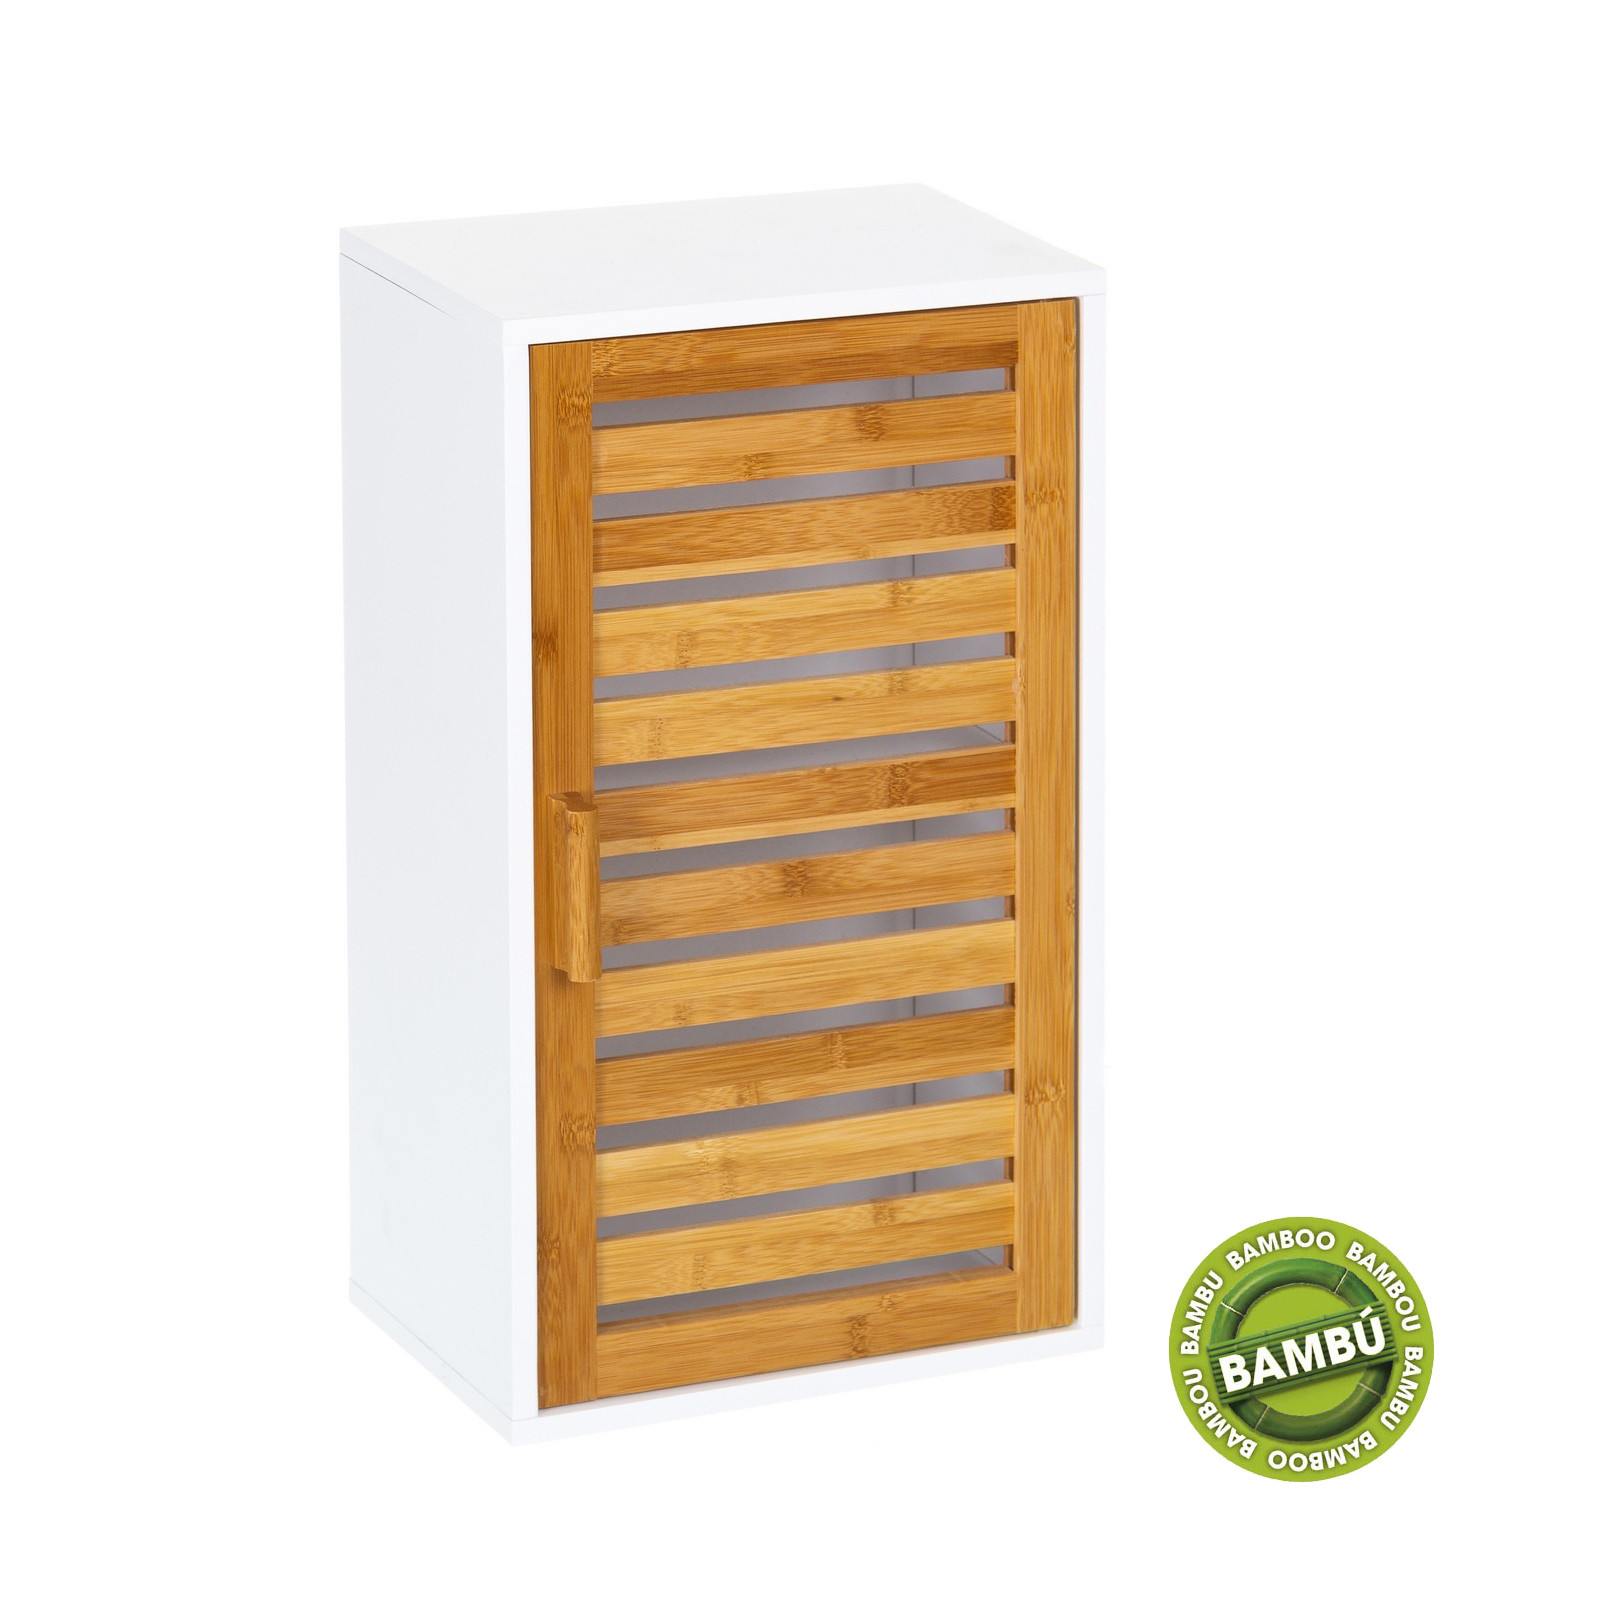 Furniture of white wall with door in natural bamboo. Natural design - Home and more